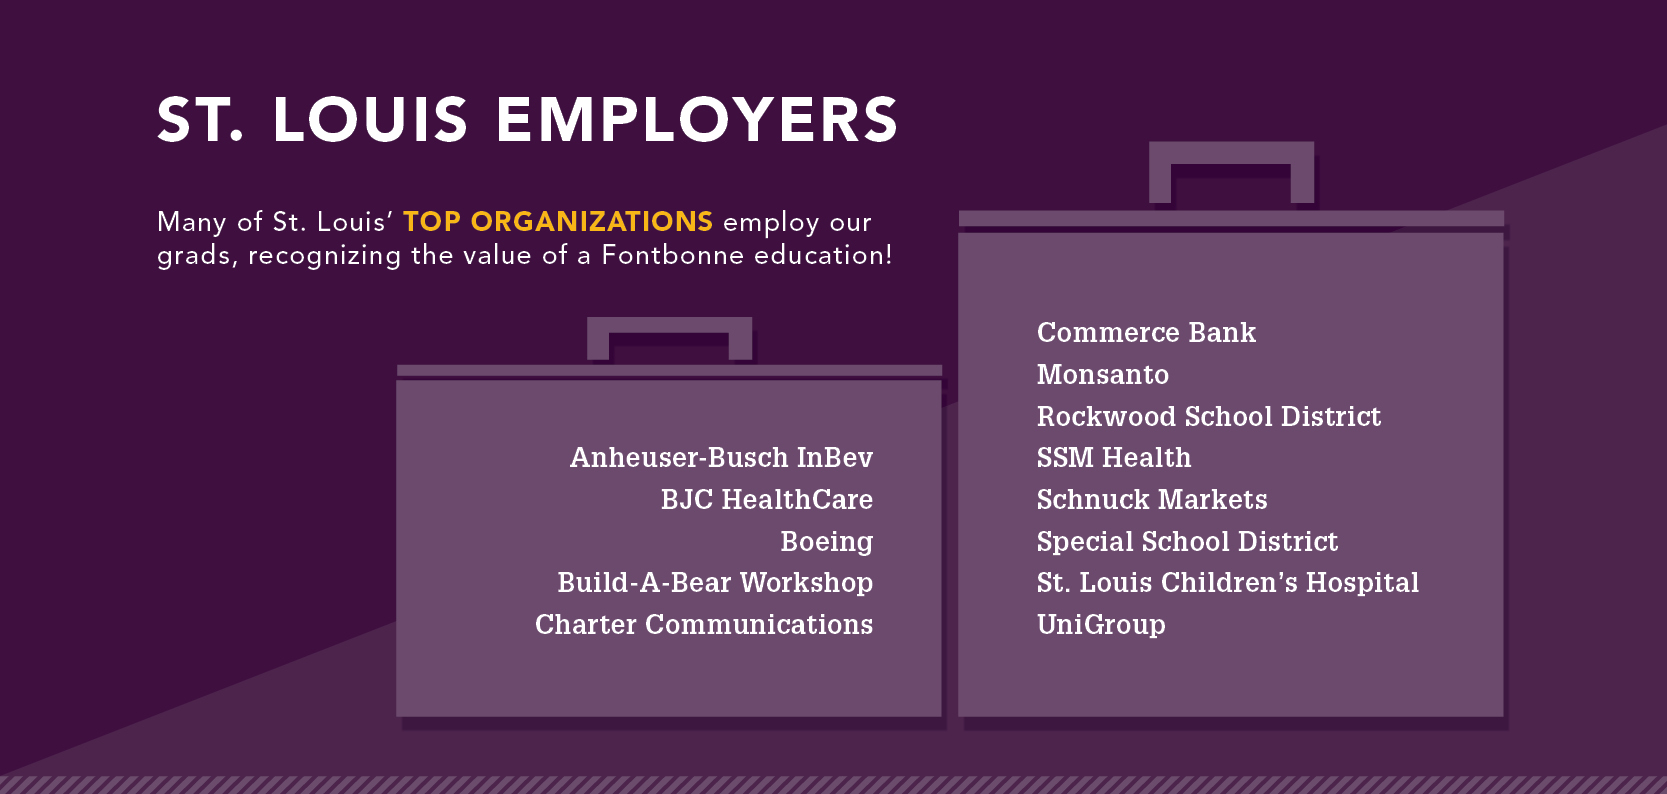 Career_Outcomes_Infographic_(Class_of_2015)_(WEB_STL_Employers)_16